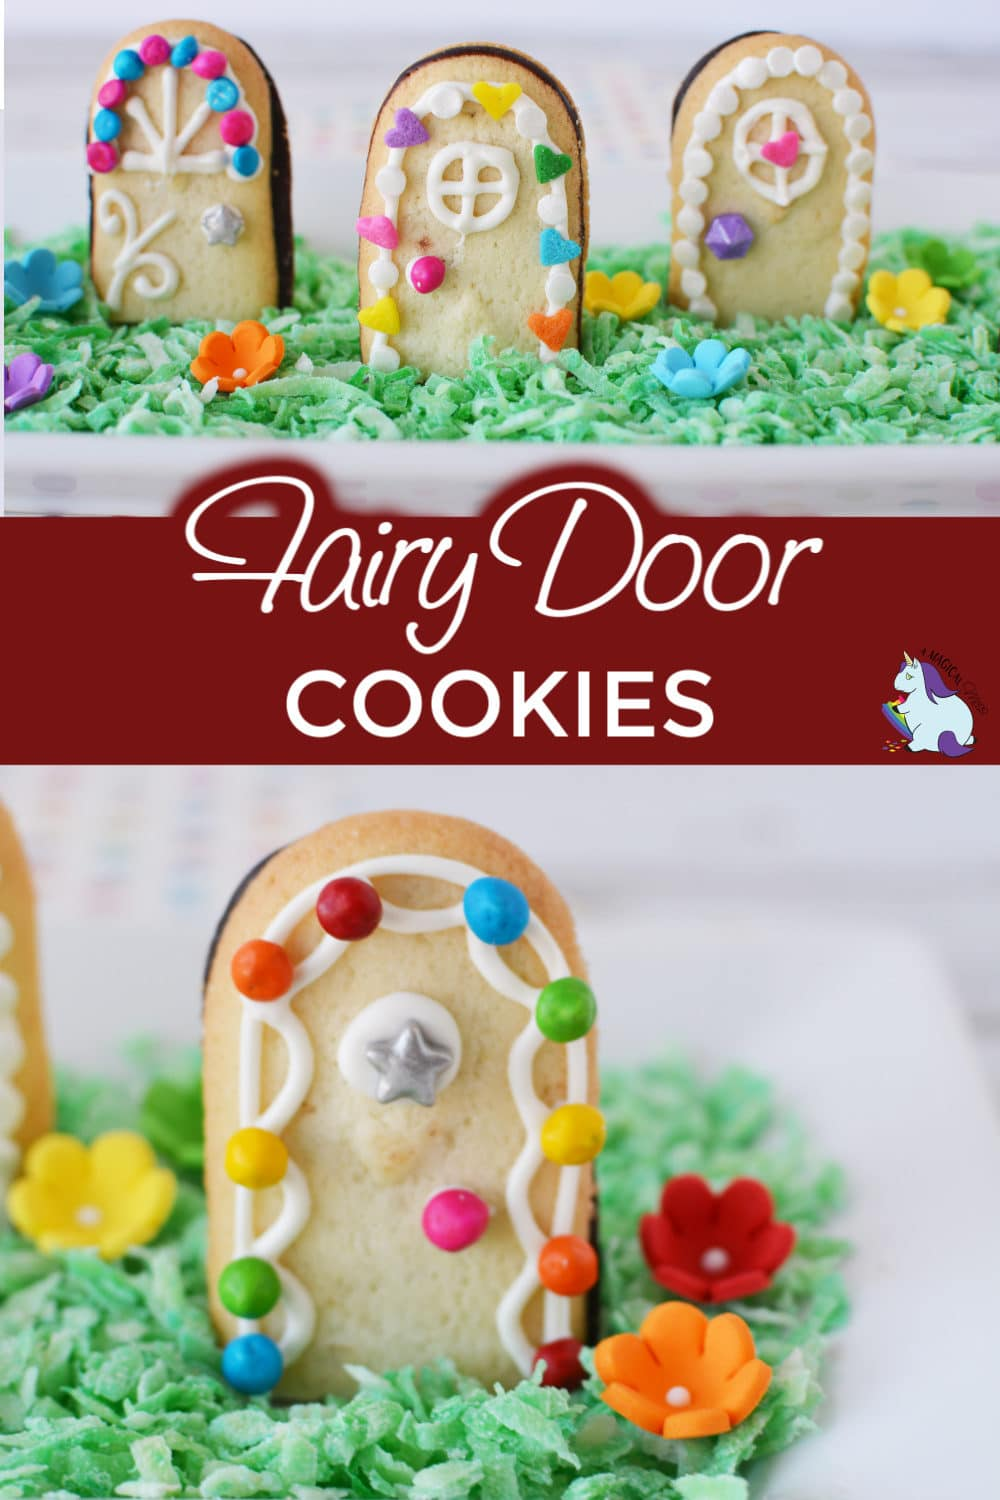 Magical Fairy Door cookies